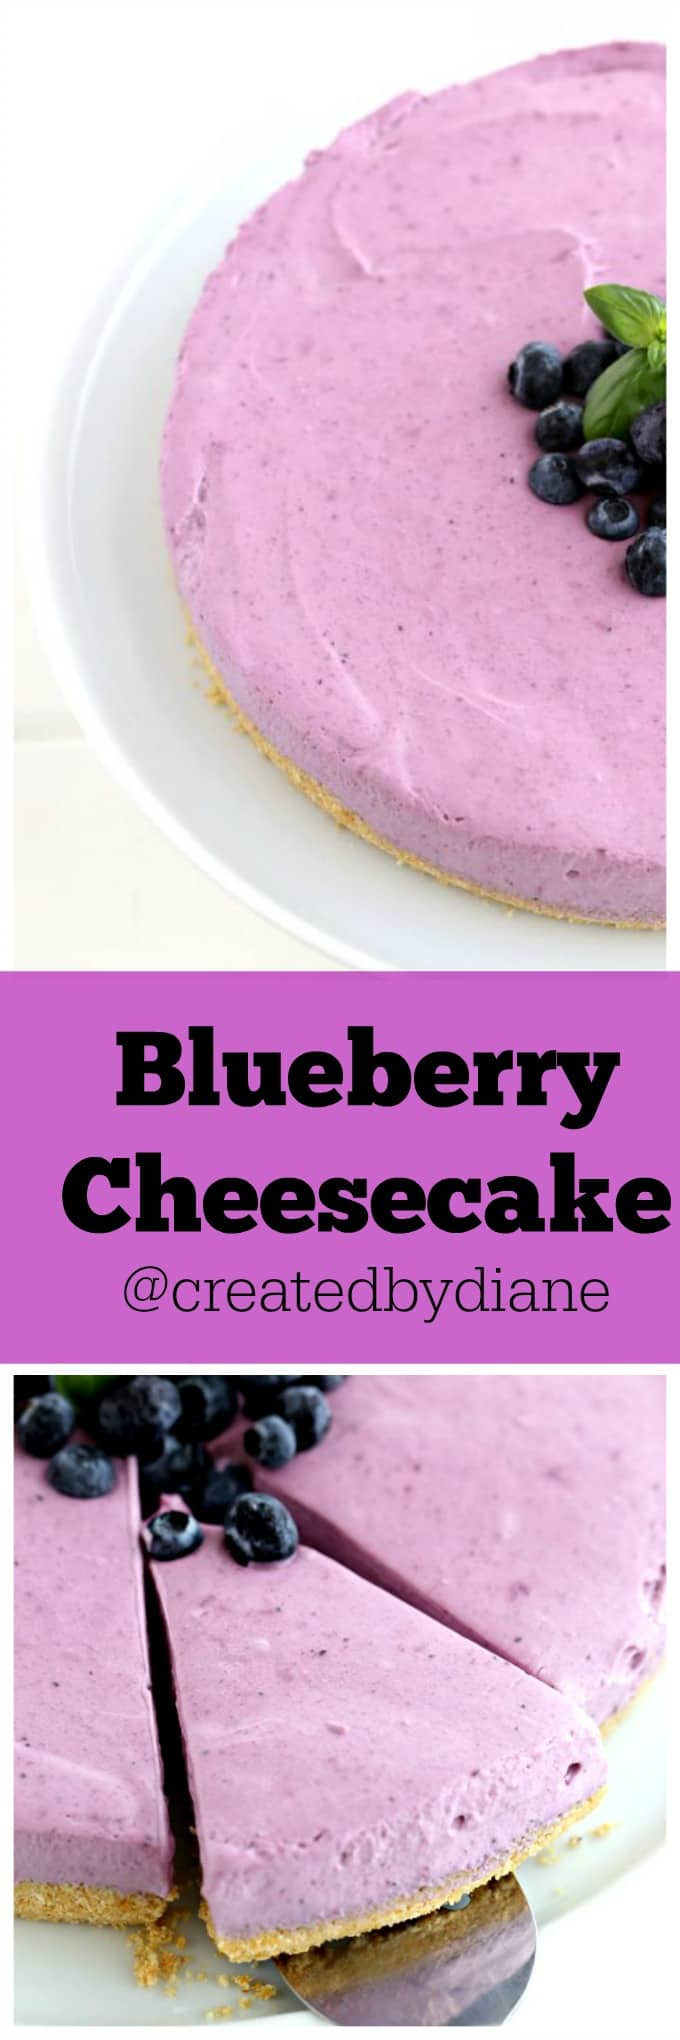 Blueberry Cheesecake @createdbydiane